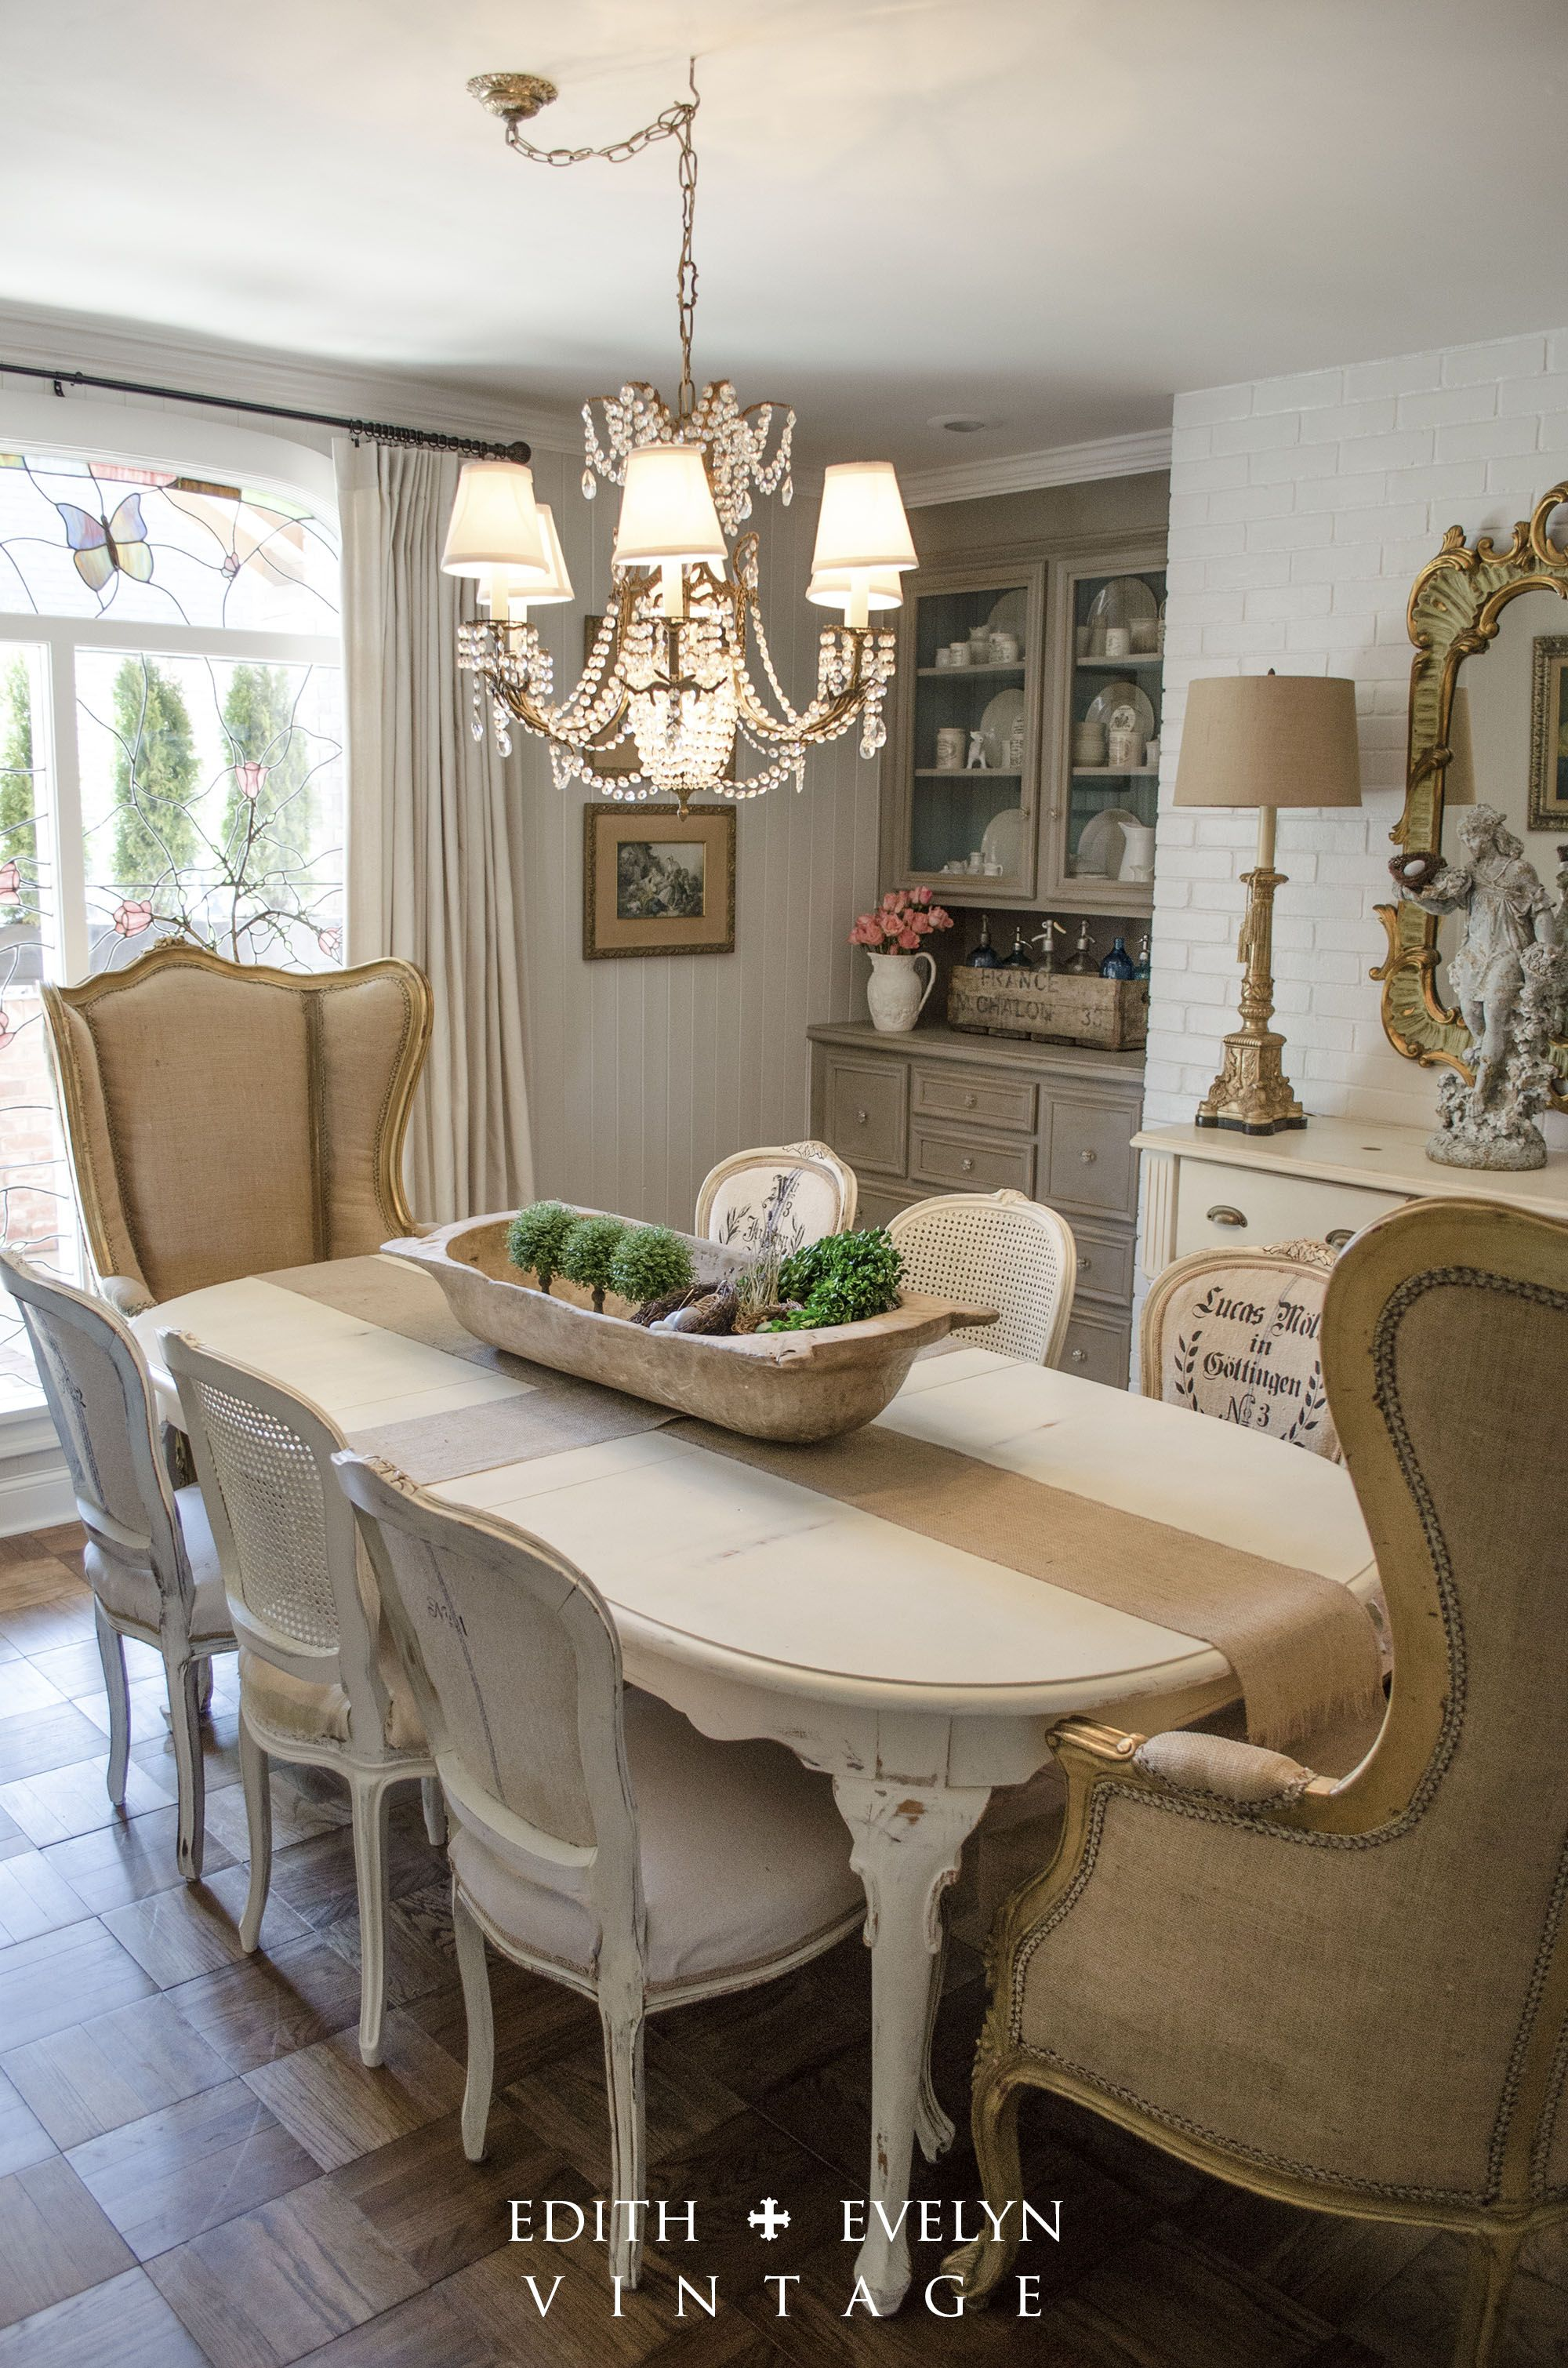 The Dining Room Renovation French Country Dining Room French Country Dining Room Decor French Country Dining Room Table